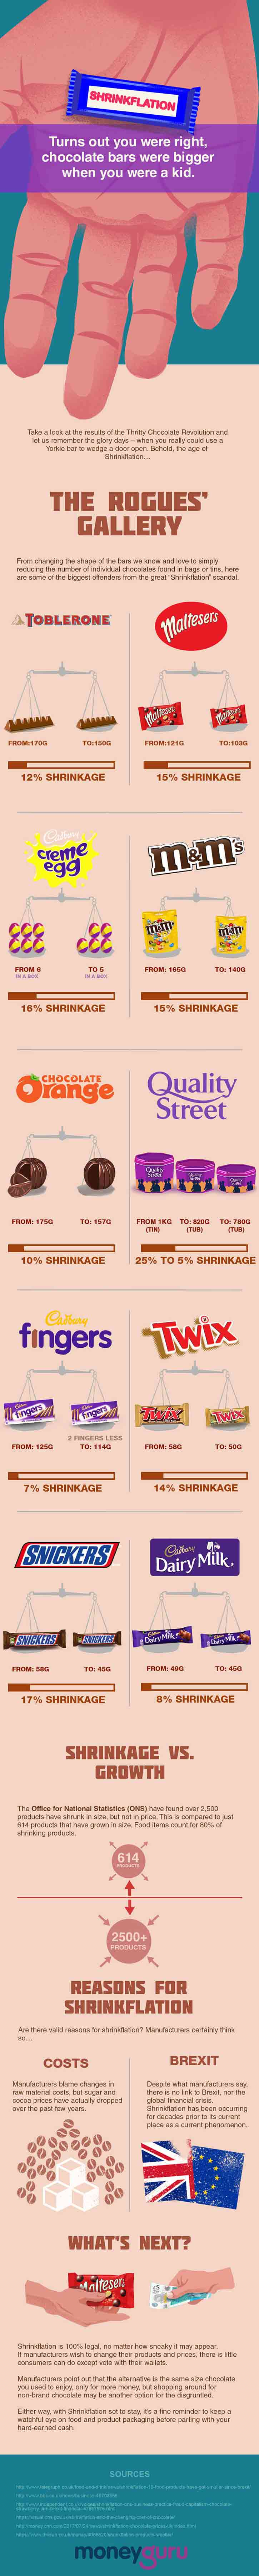 shrinking chocolate bars